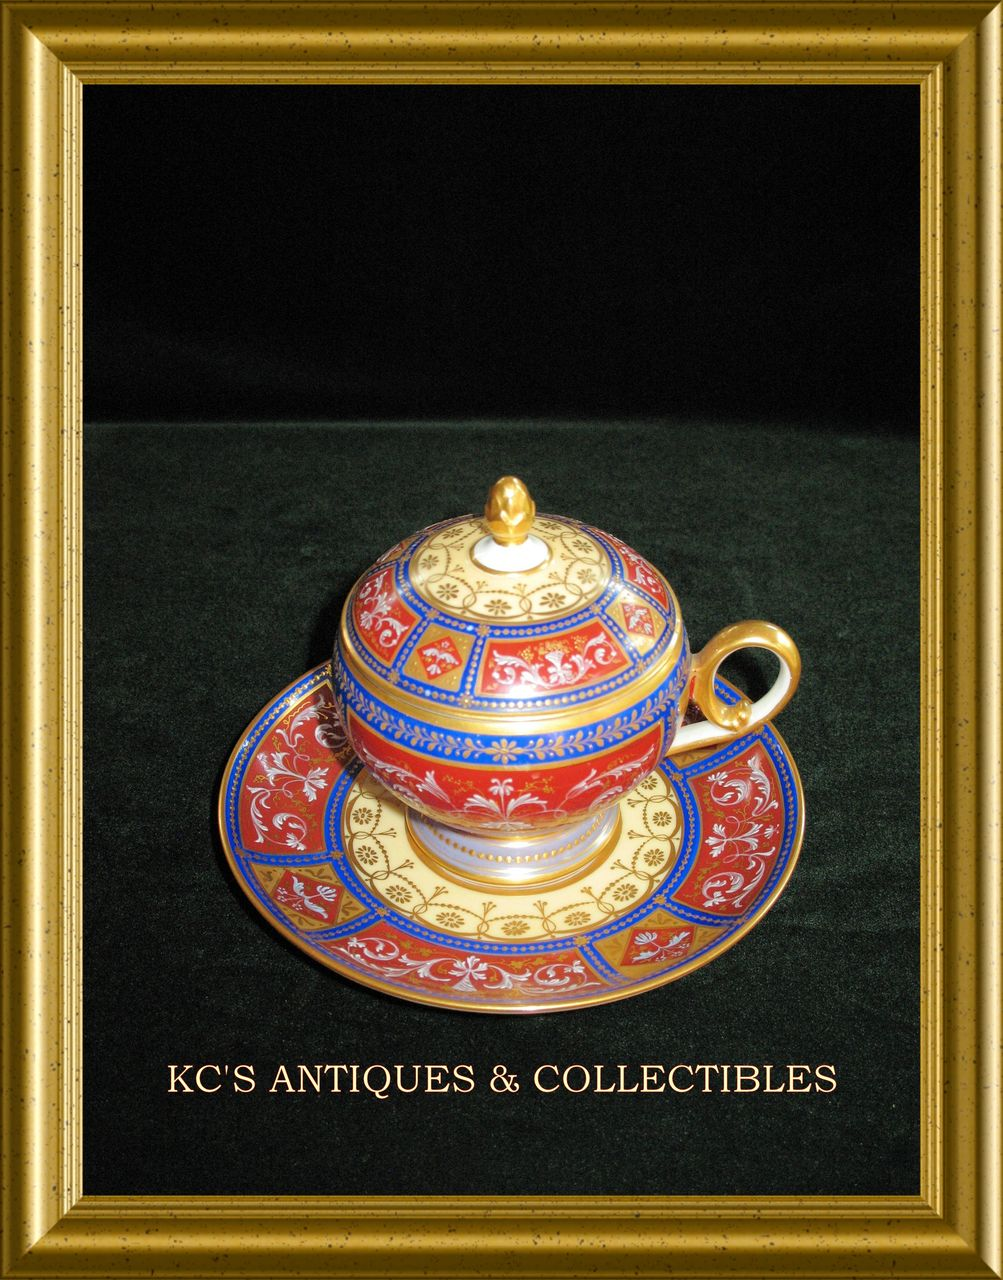 Gorgeous Royal Vienna lidded cup and saucer with gilding work (scroll and floral design) throughout